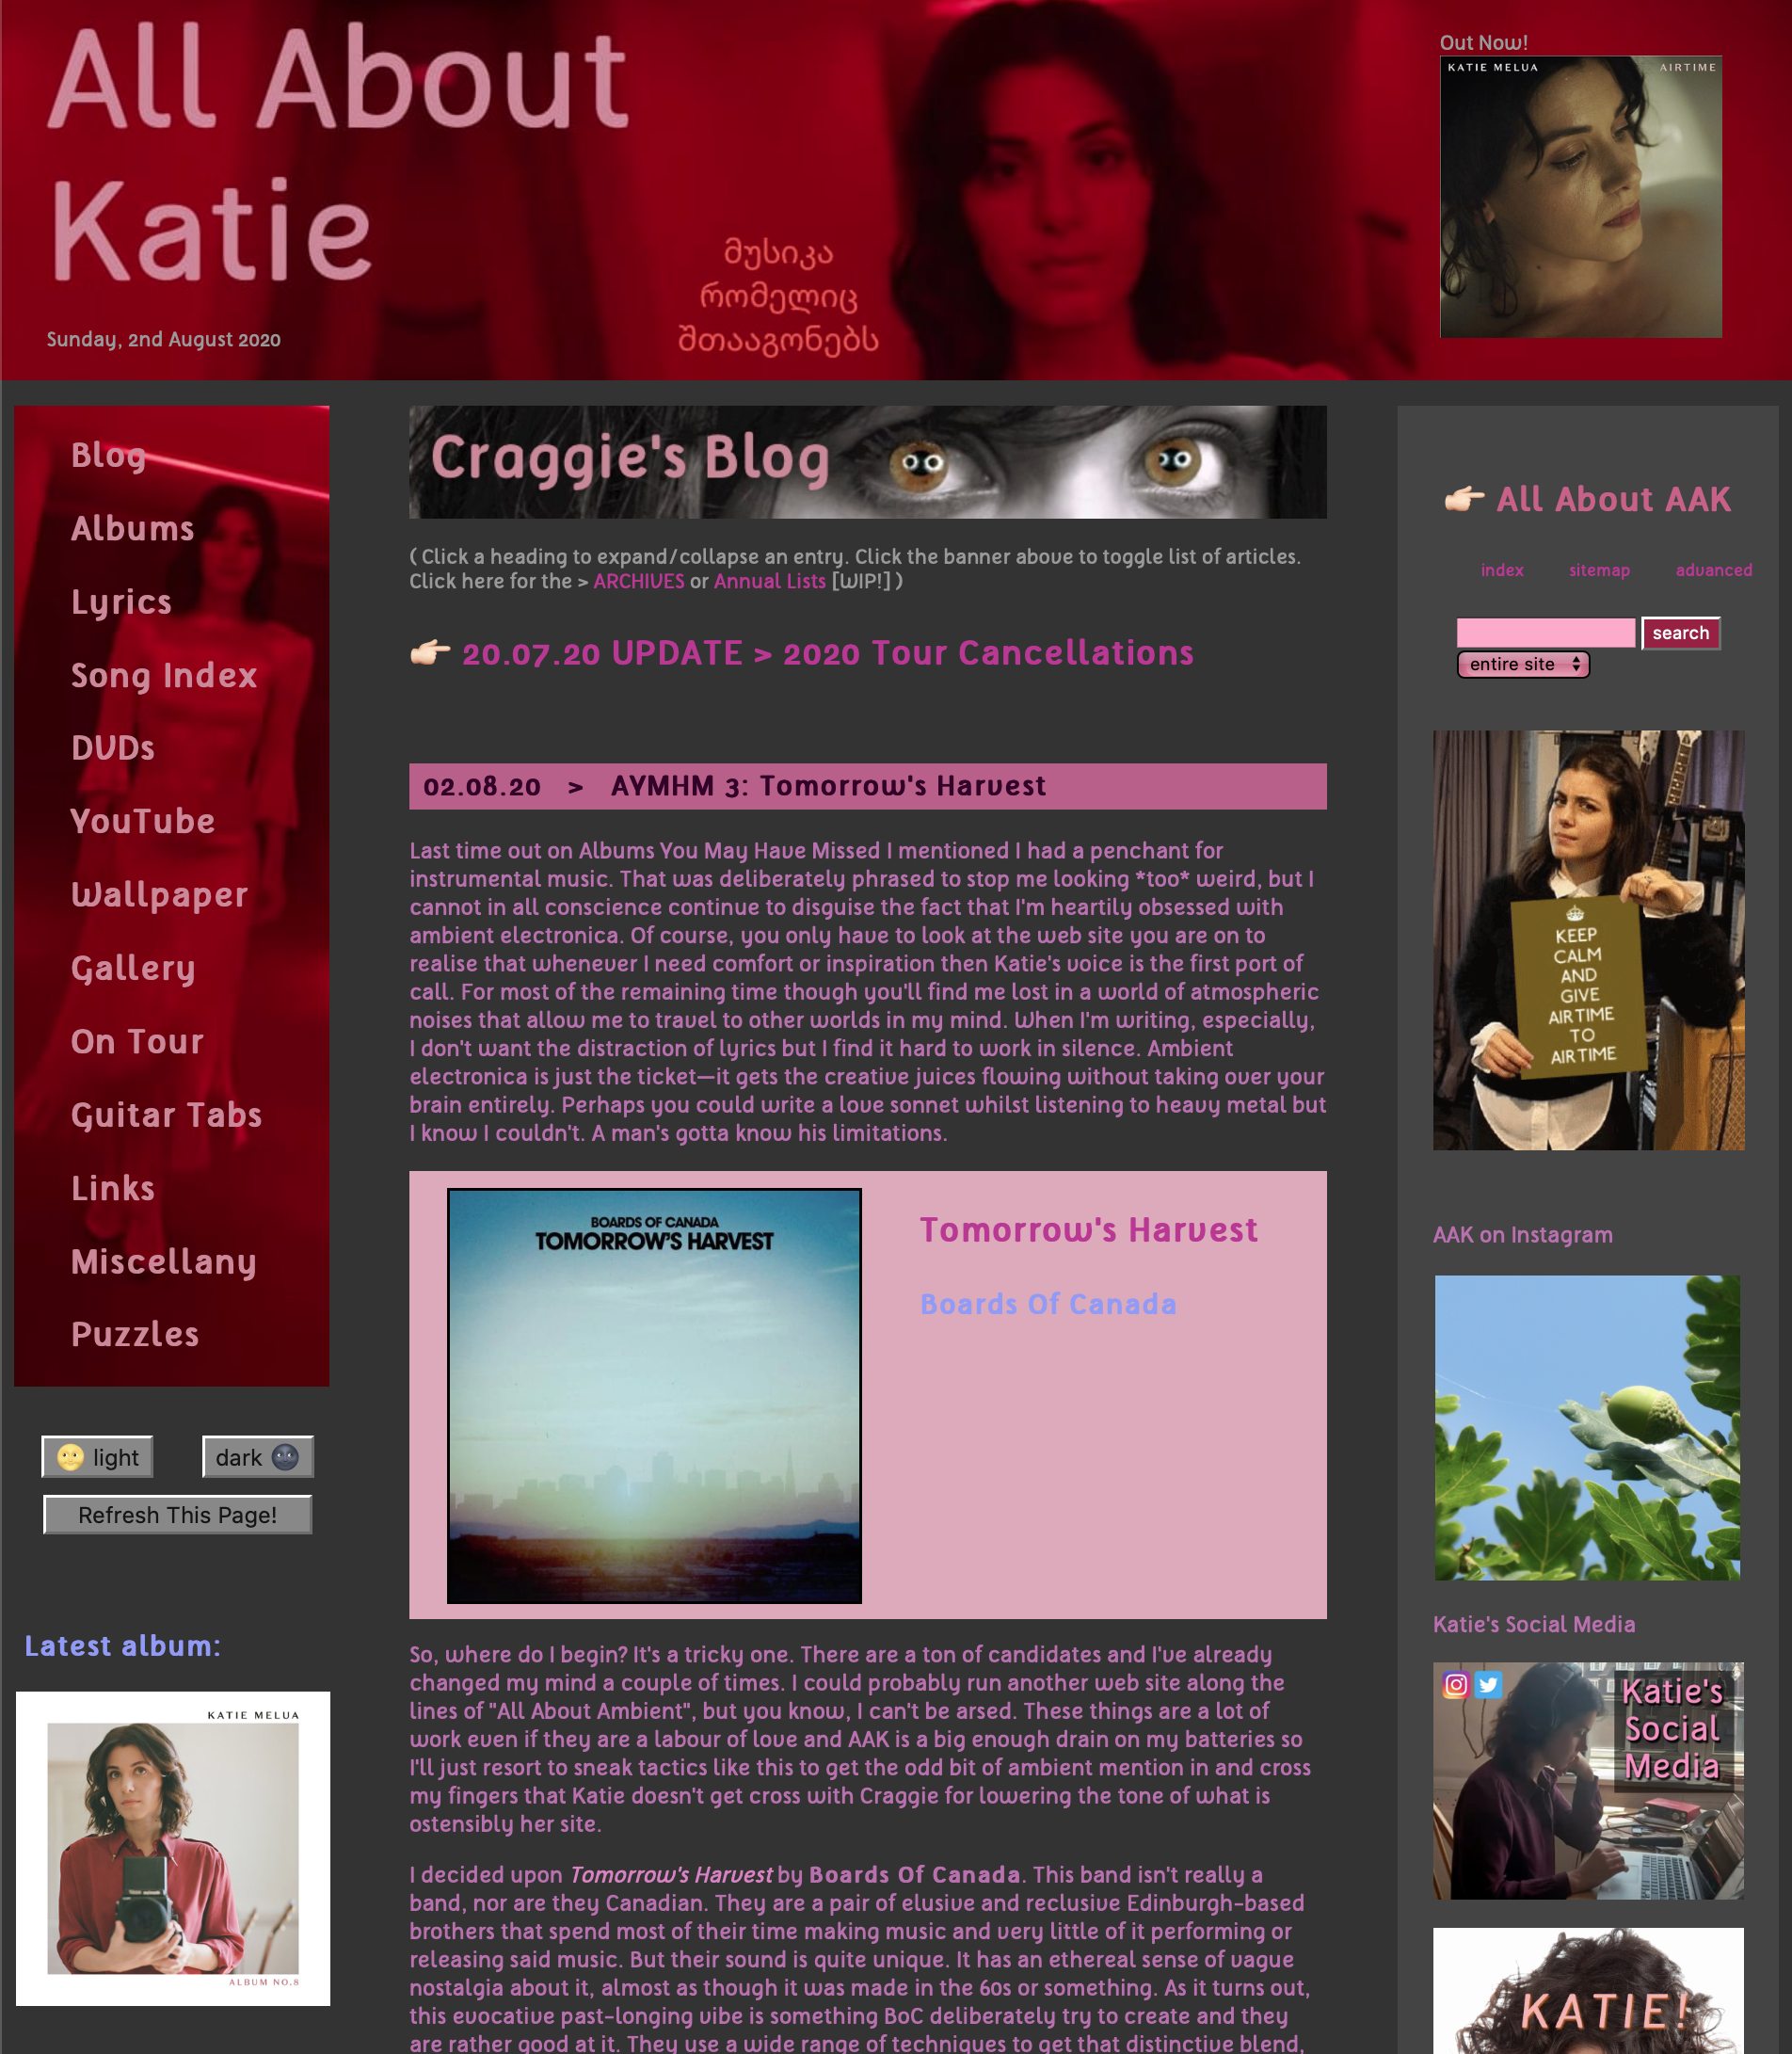 all about katie website